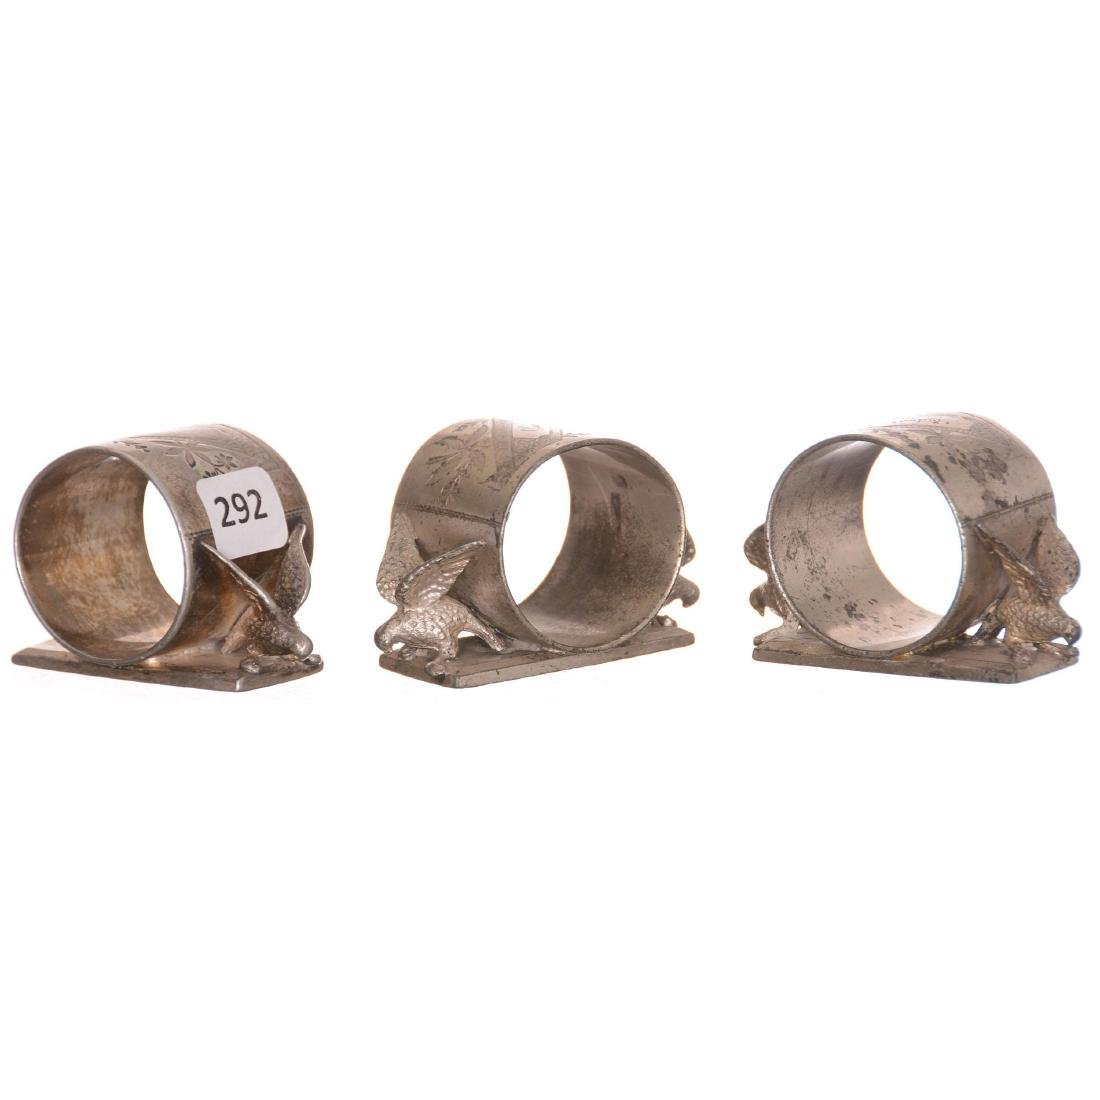 (3) Silverplate Napkin Rings